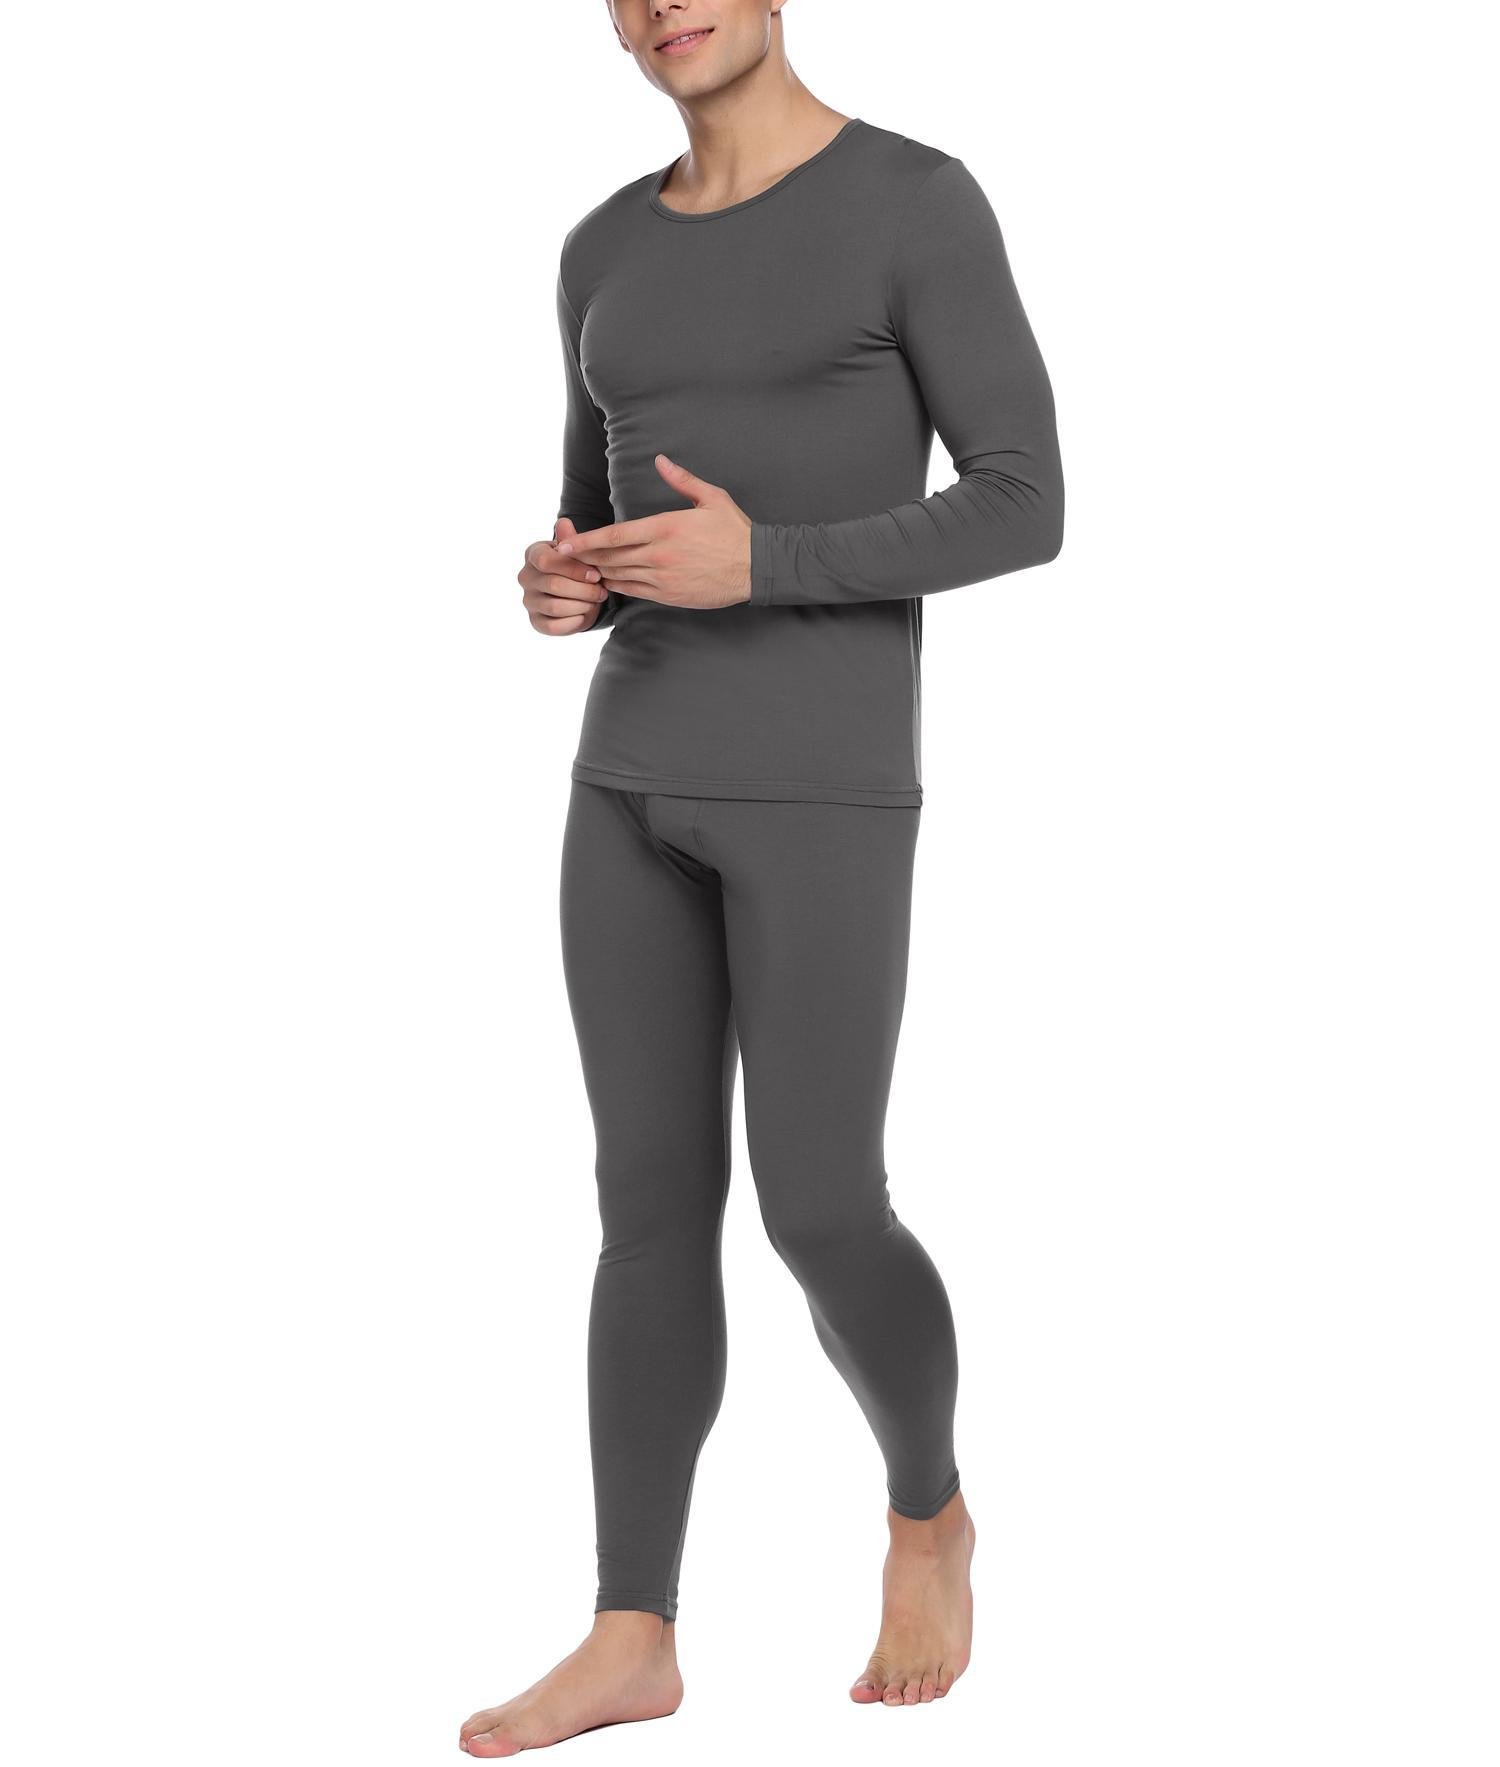 Fanala Men Soft Ultra Microfiber Fleece Thermal Underwear Long Johns Set Grey XXL